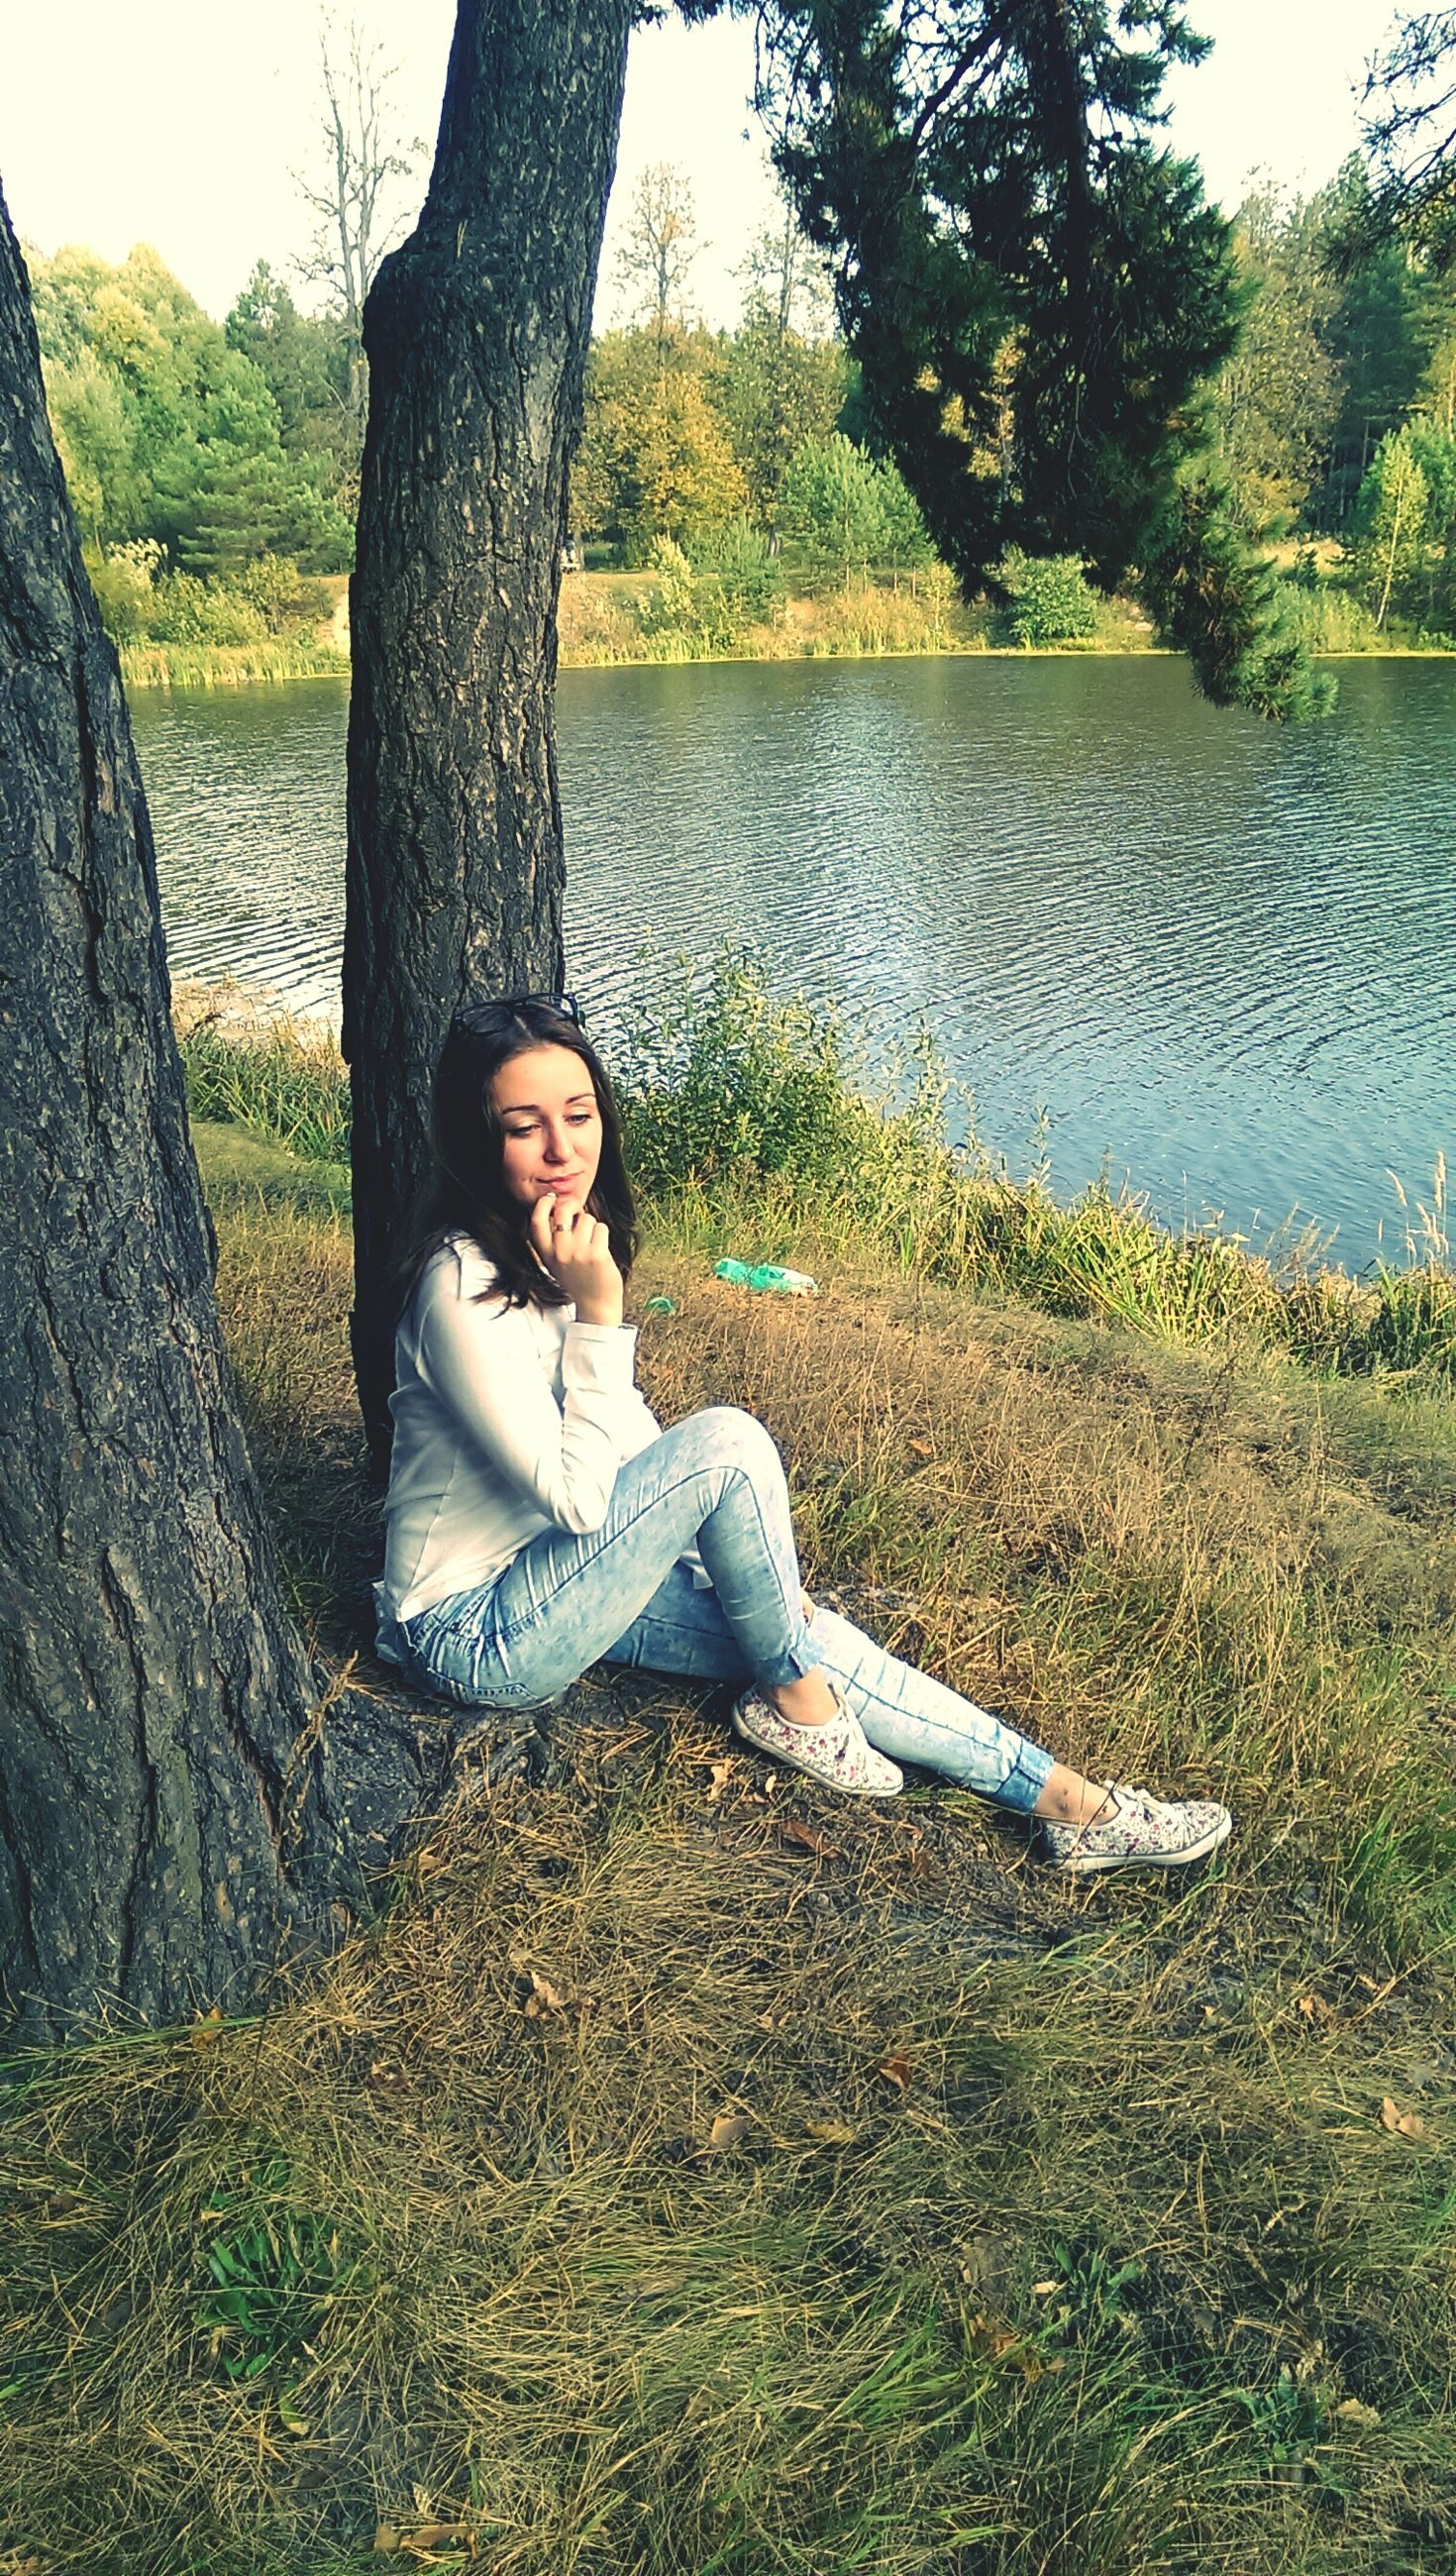 tree, young adult, lifestyles, casual clothing, person, leisure activity, grass, sitting, relaxation, young women, water, standing, full length, nature, day, three quarter length, looking at camera, tranquility